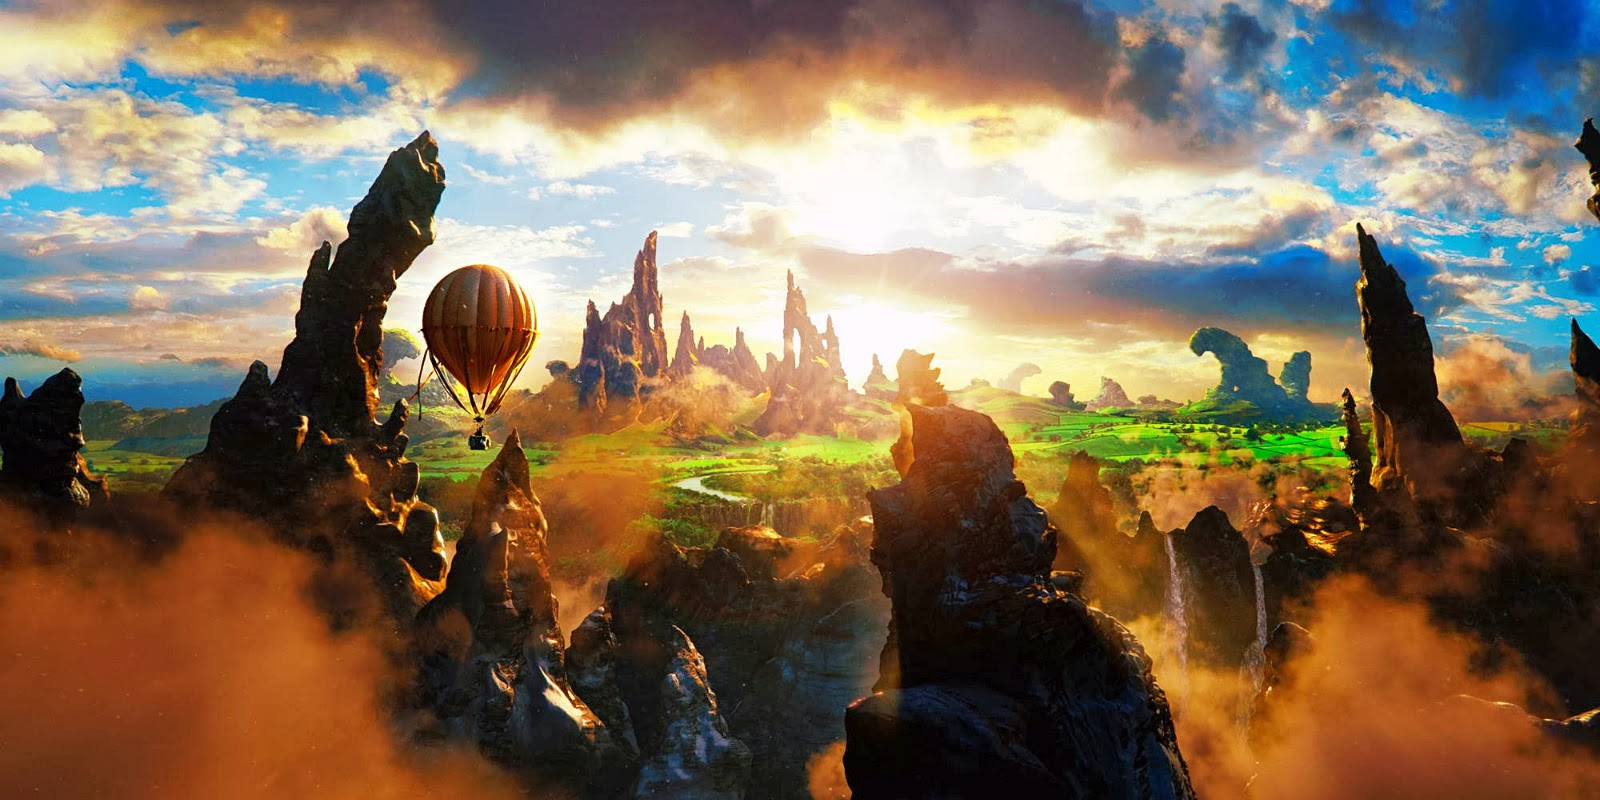 Oz The Great And Powerful 3d Movie Hd Wallpapers Hd  - oz the great and powerful 3d movie wallpapers